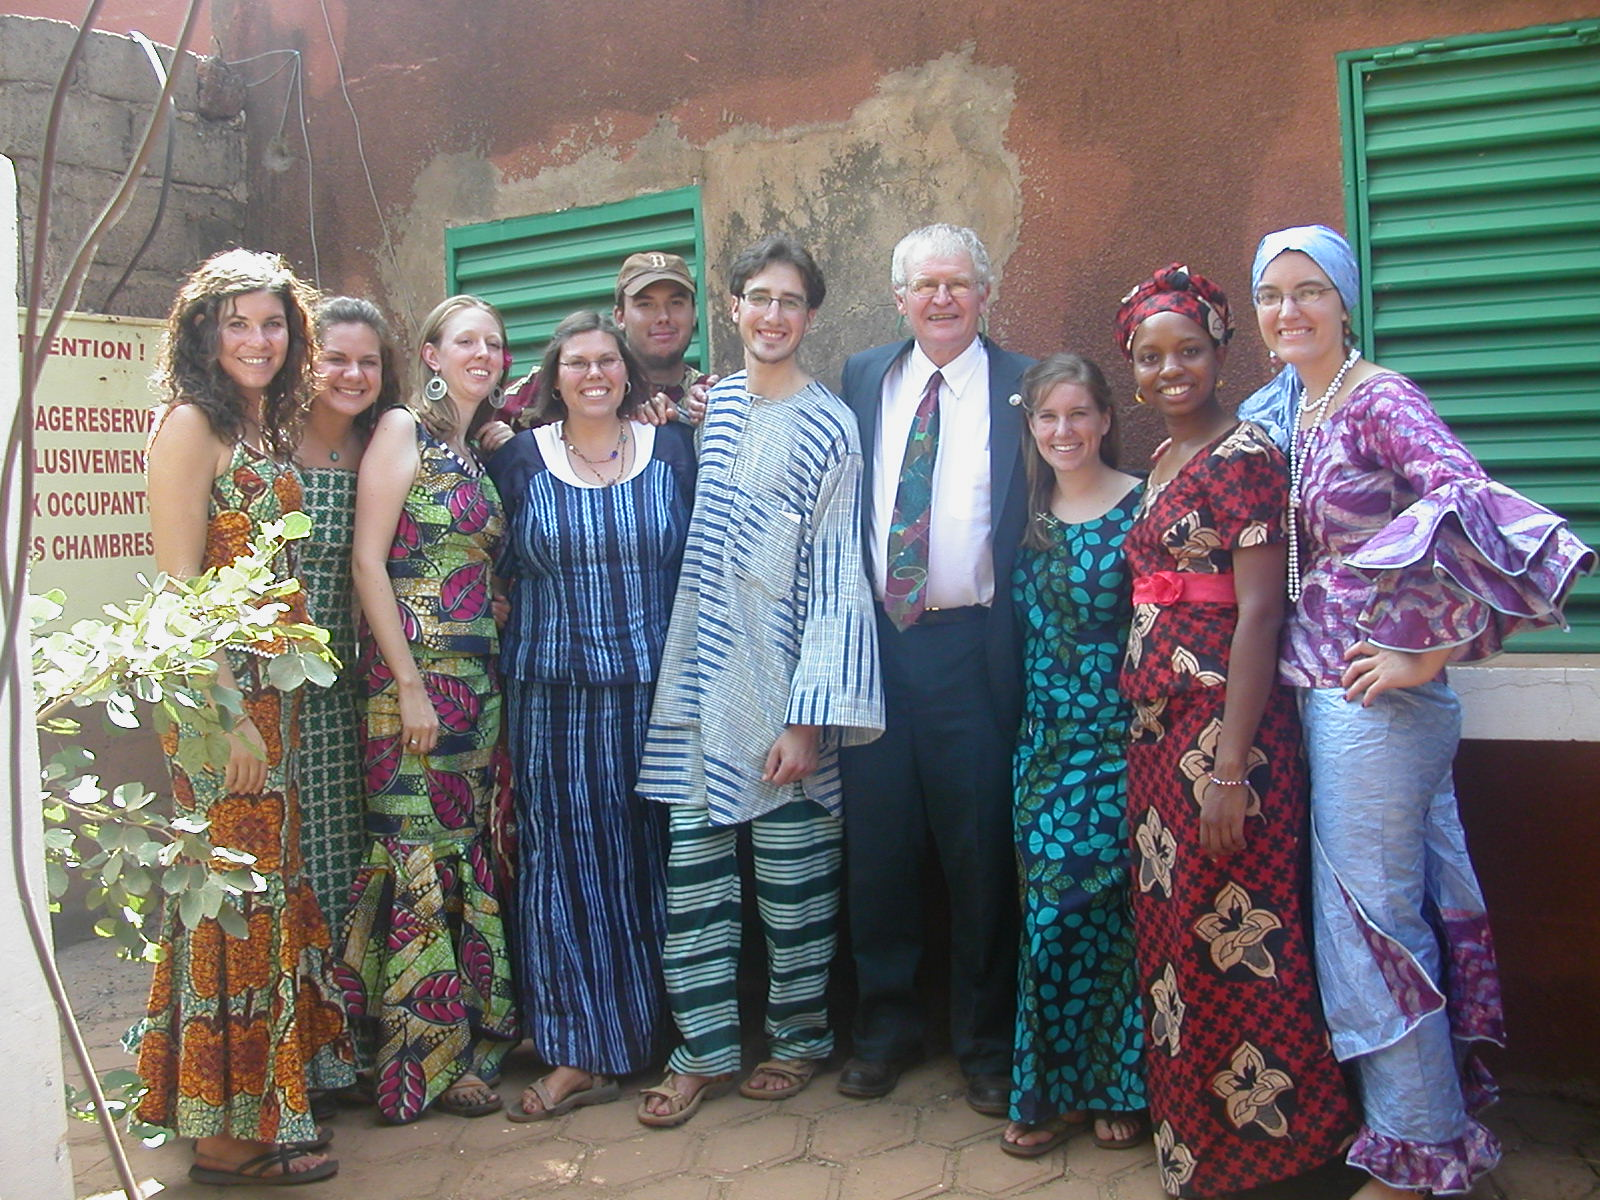 Douglass Teschner with Peace Corps Volunteers in West Africa.